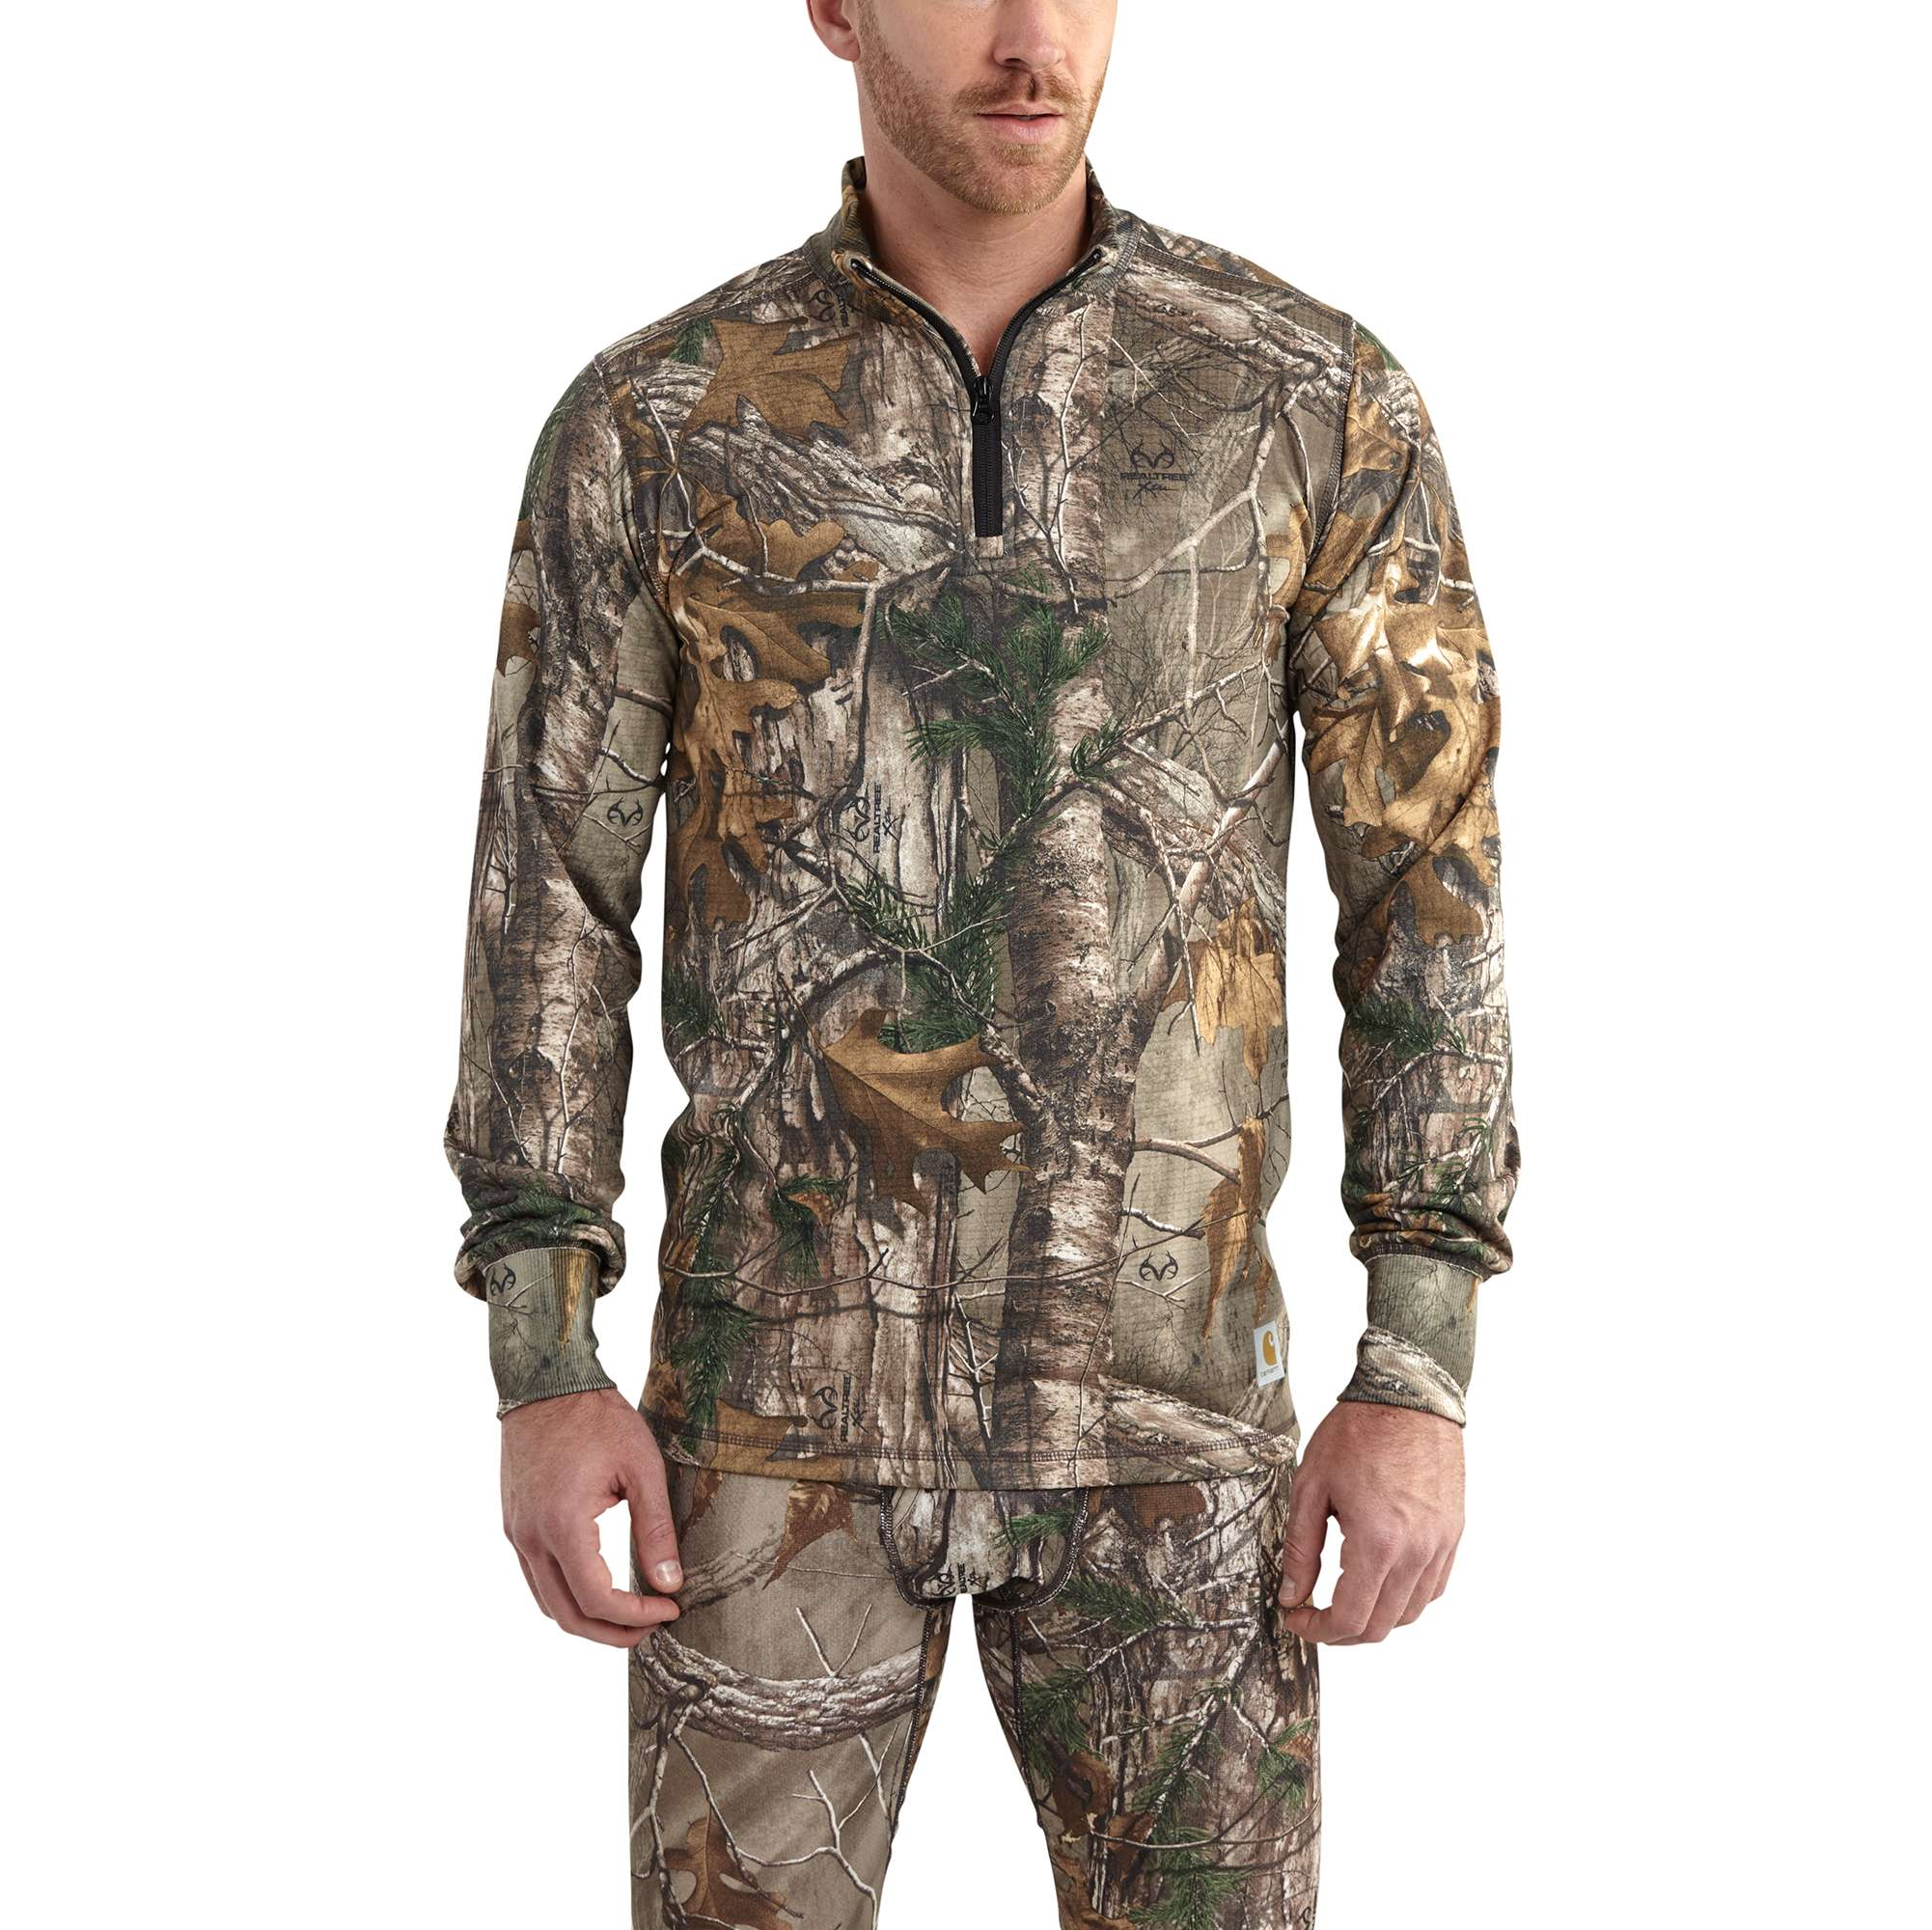 Carhartt Carhartt Base Force Extremes Cold Weather Camo Quarter-zip